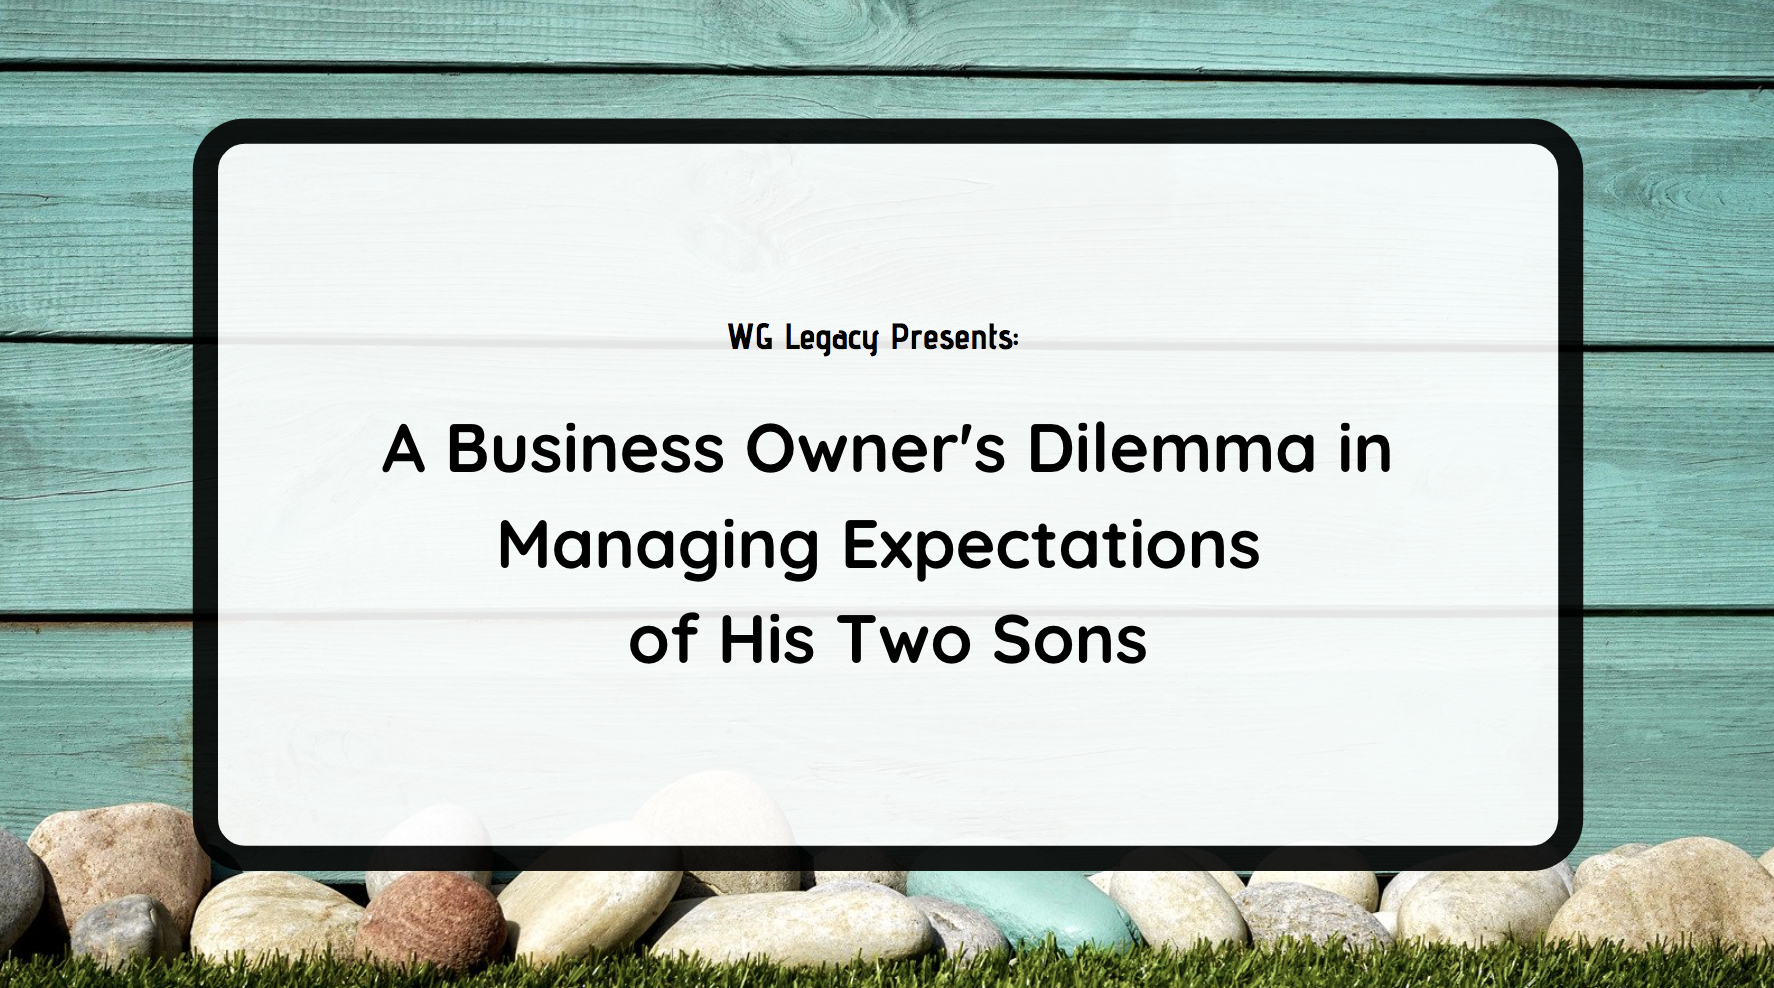 A Business Owner's Dilemma in Managing Expectations of His Two Sons